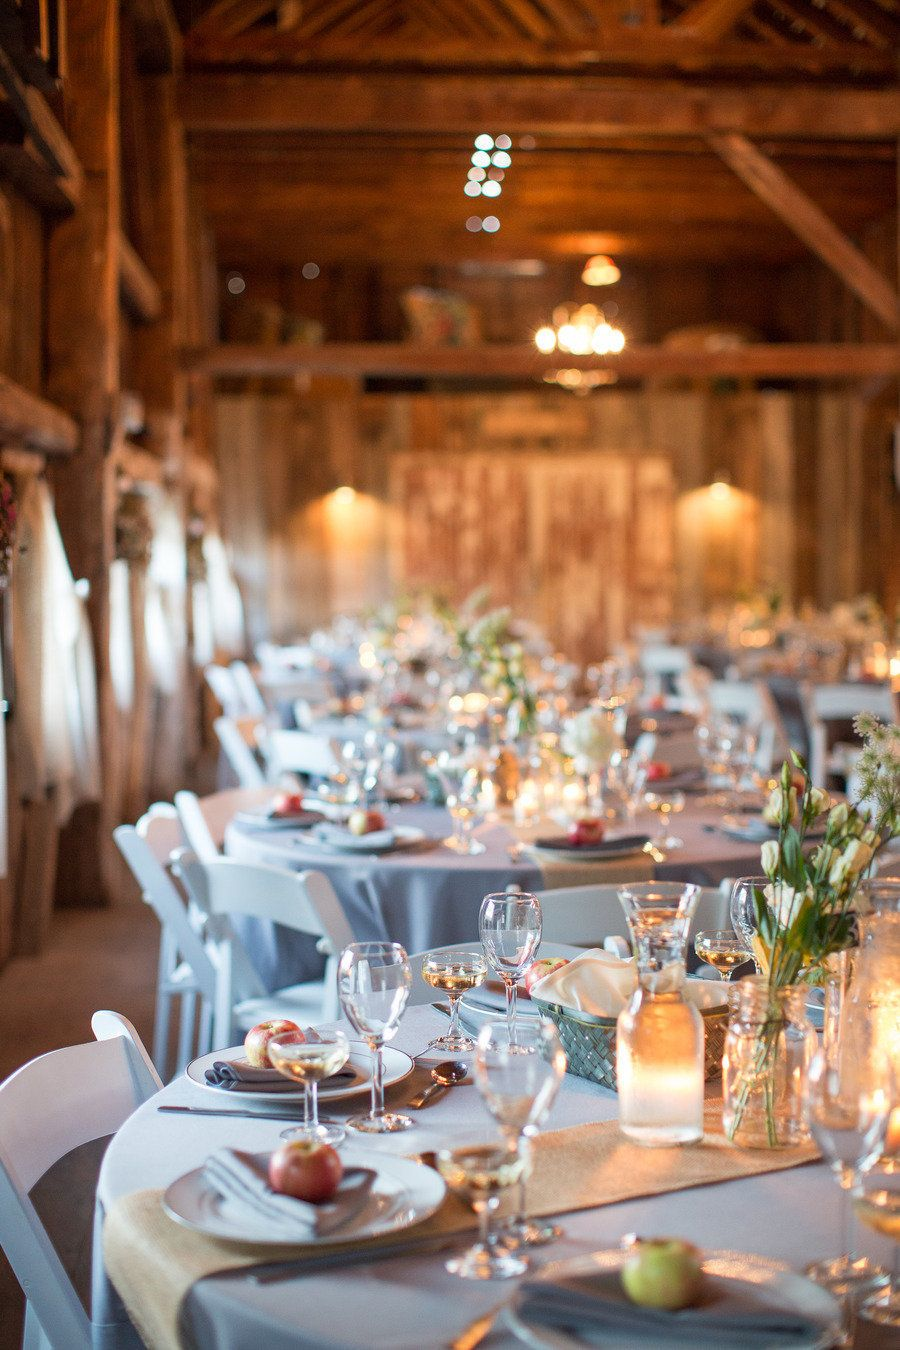 Photography by Jackie Nagle of J. Harper Photography / jharperphoto.com/, Event Planning by Sarah Fletcher / bishopfarm.com/, Floral Design by Cherry Blossom Floral Design / cherryblossomfloral.com